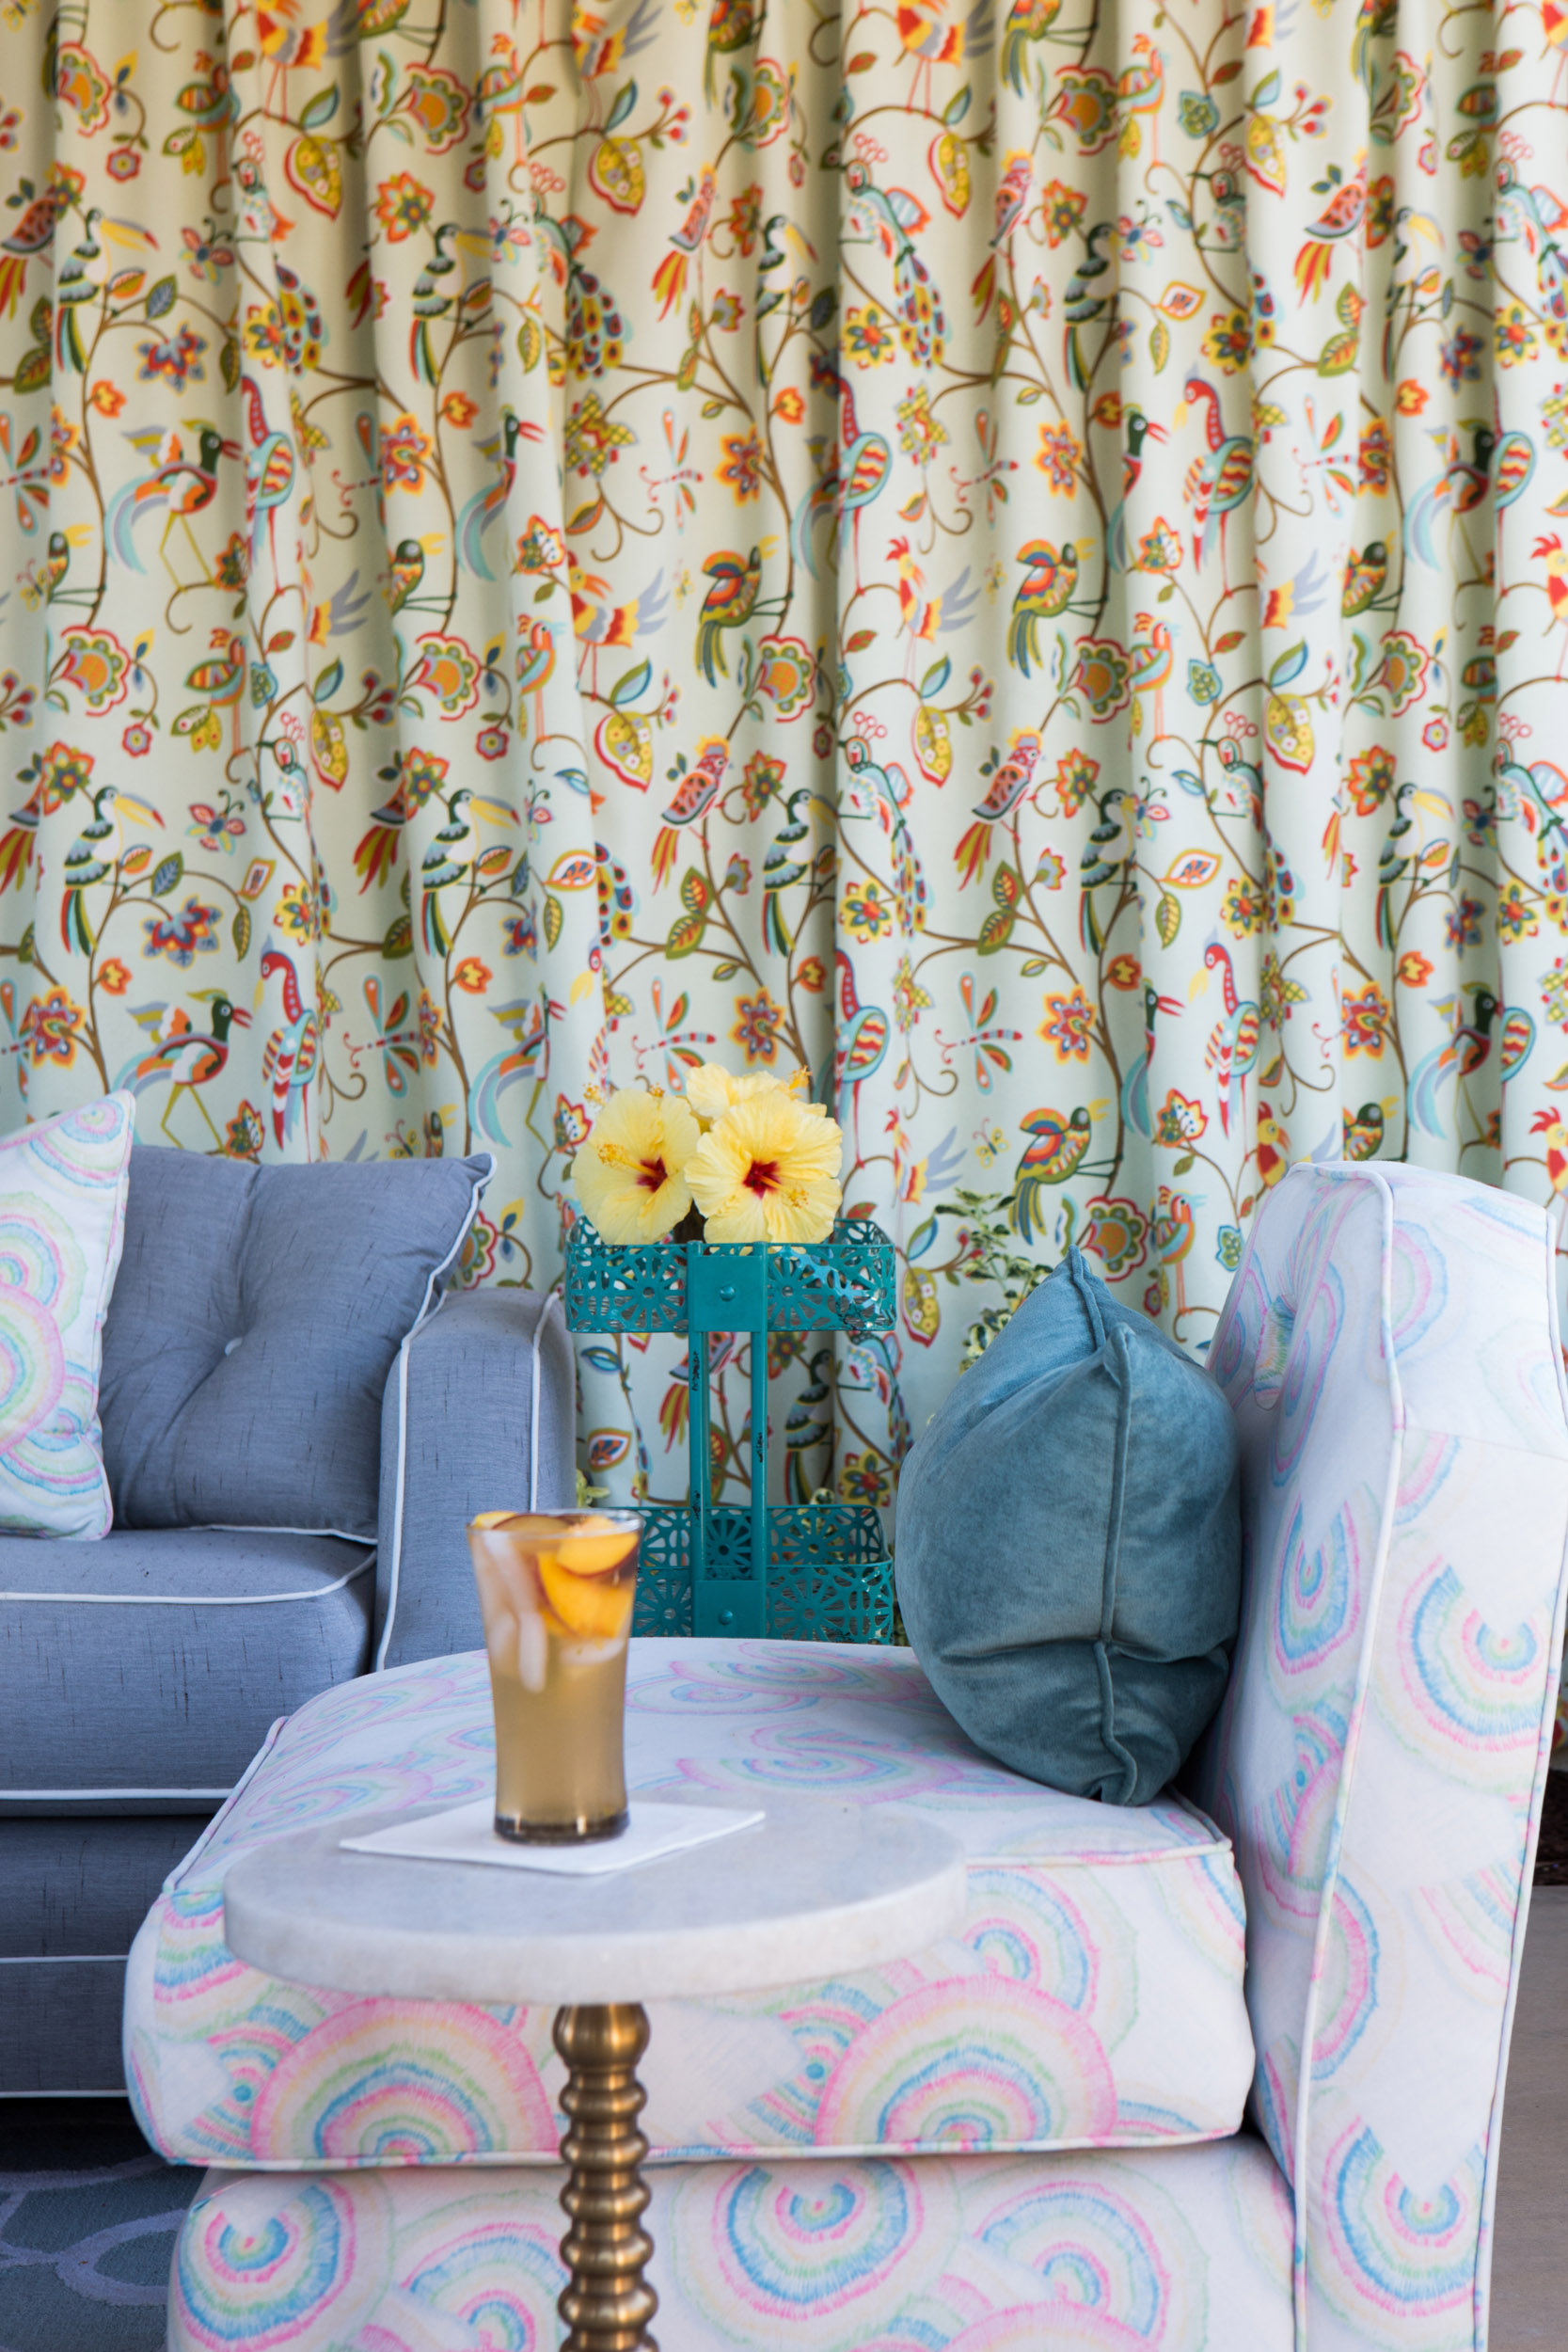 Spring outdoor fabrics make this lounge as chic as one you'd find indoors